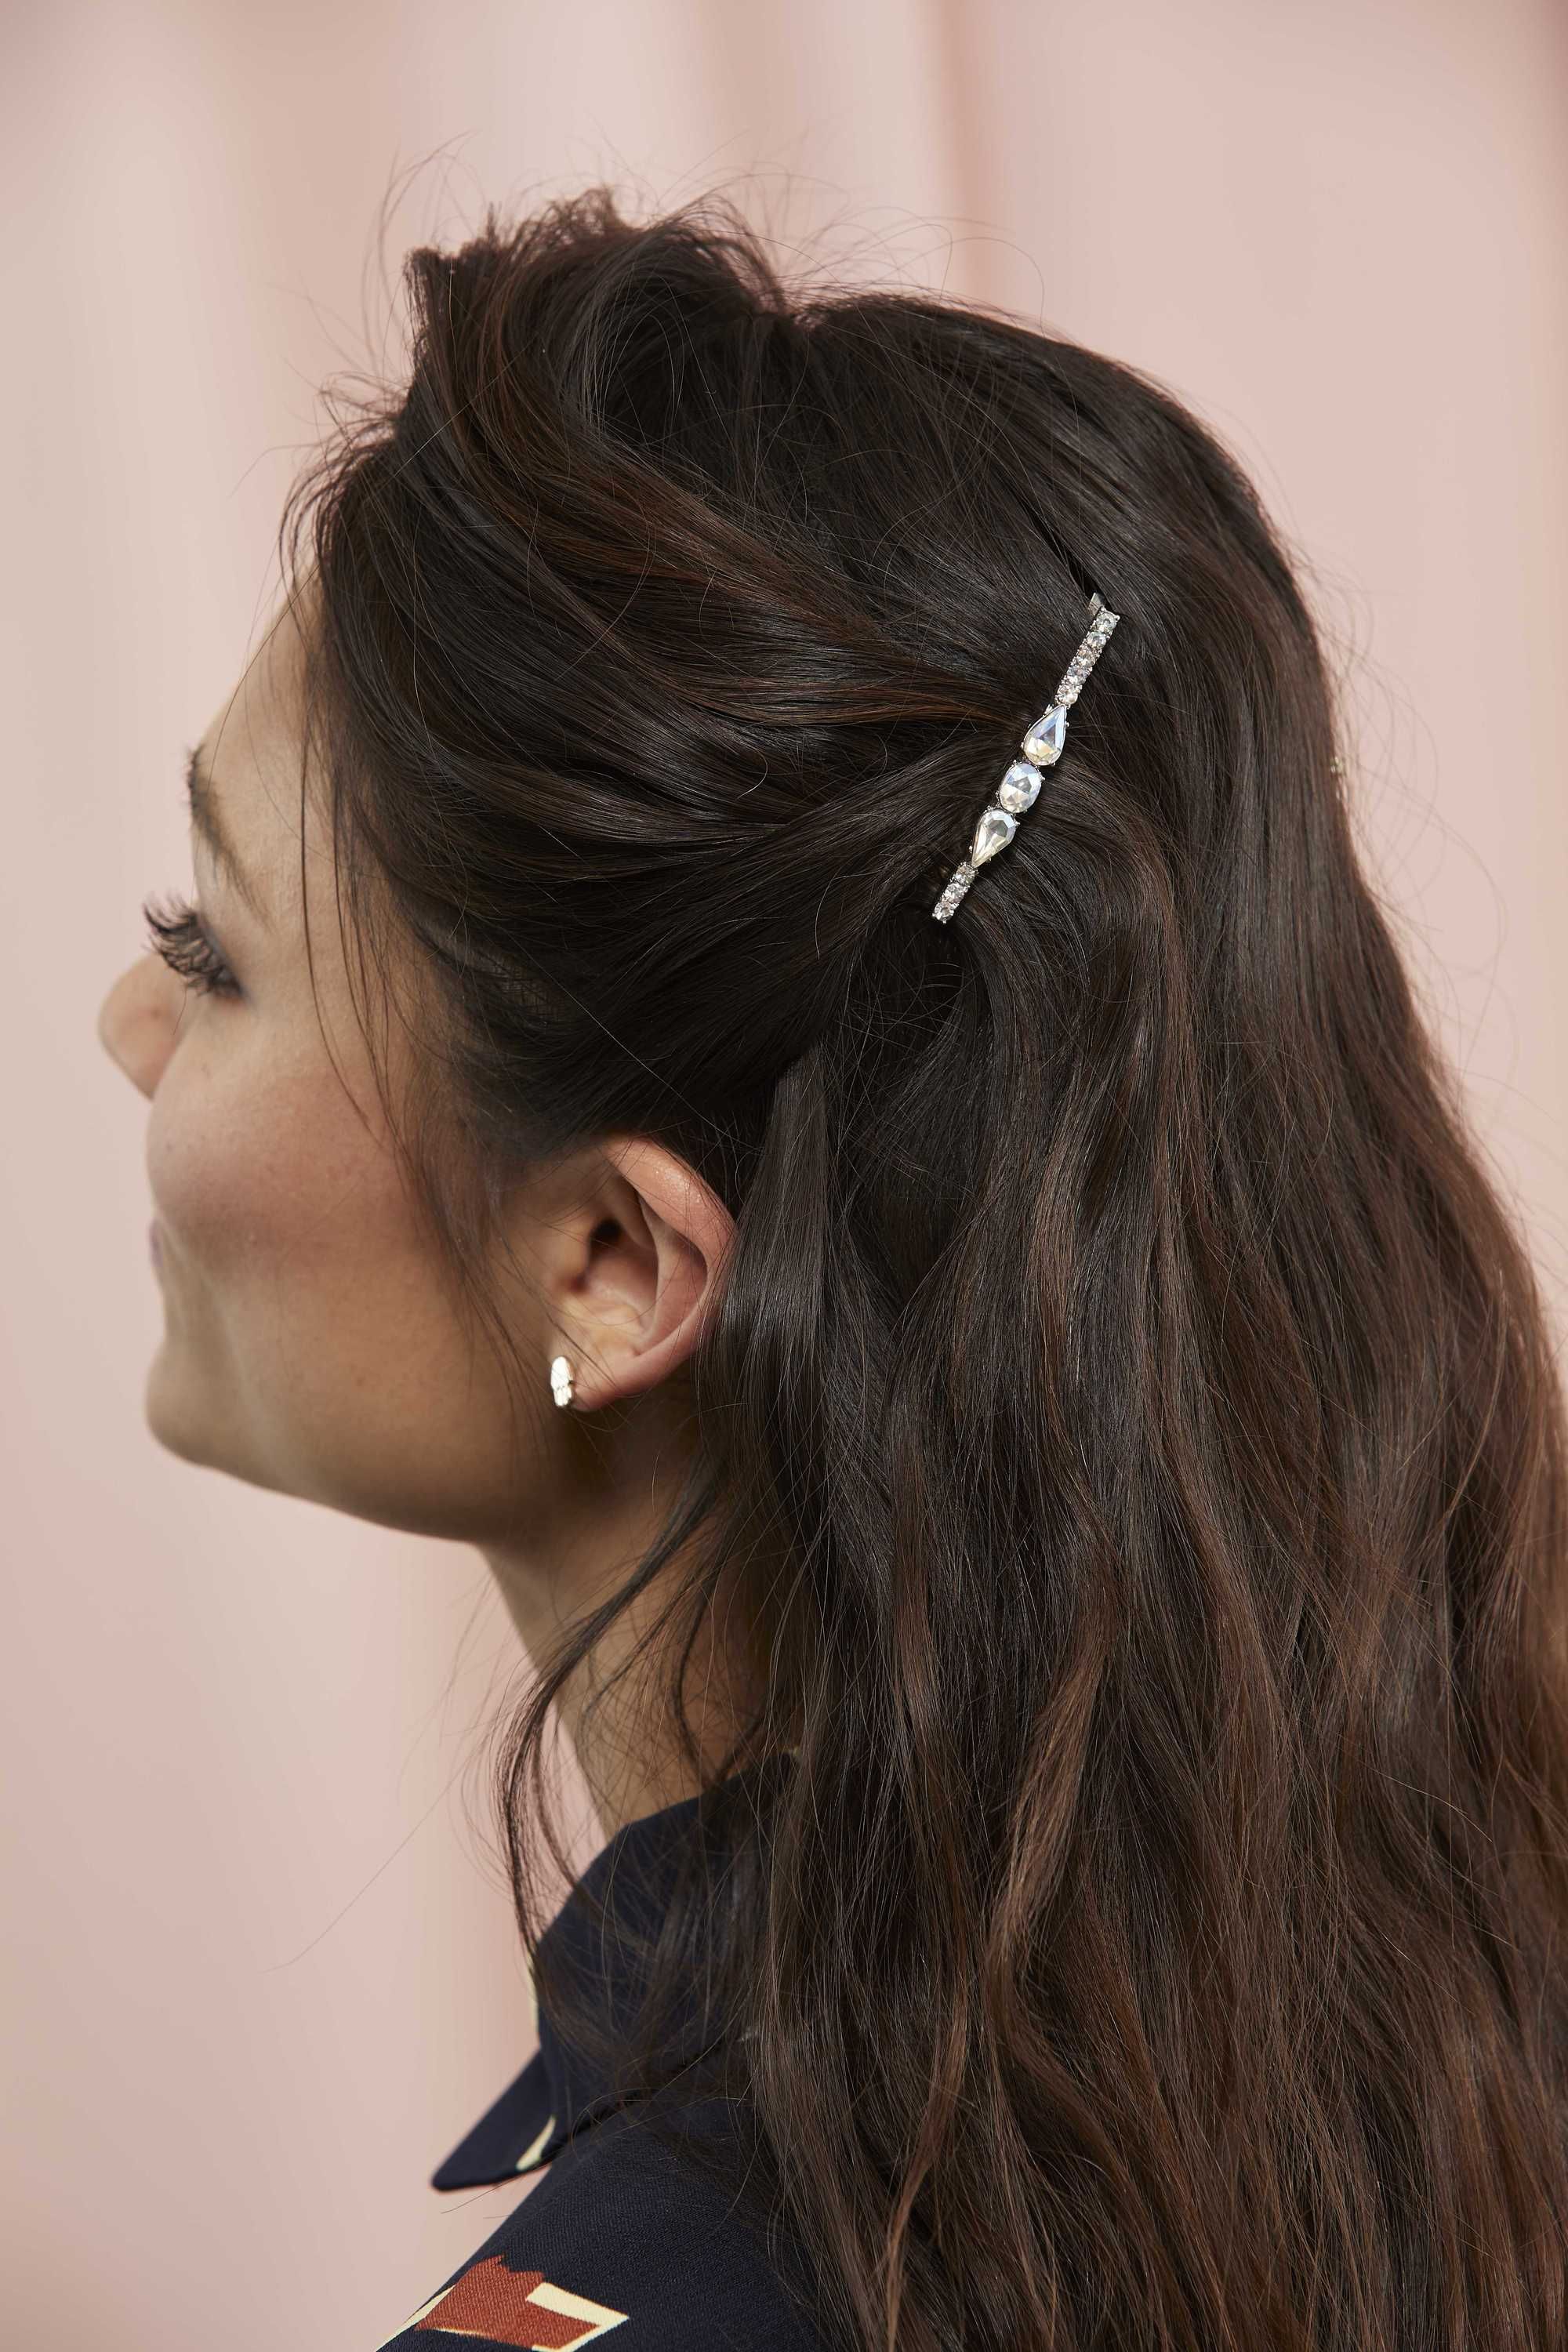 Woman with long dark brown wavy hair with a barrette hair pin